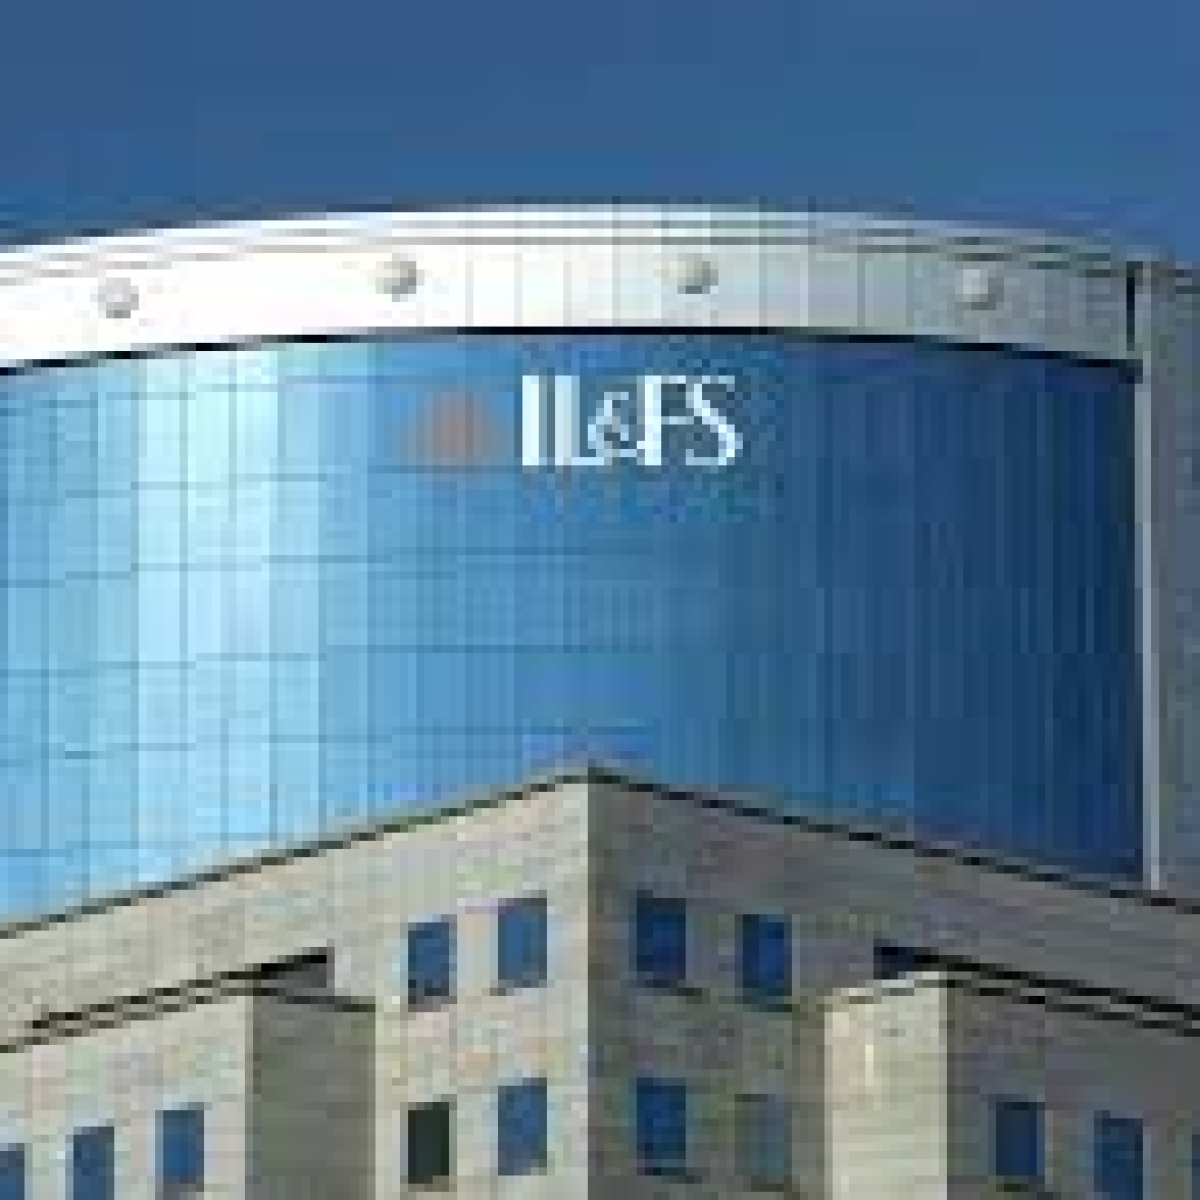 'Substantial recovery' likely against IL&FS external debt worth Rs 94,000 cr, says Injeti Srinivas